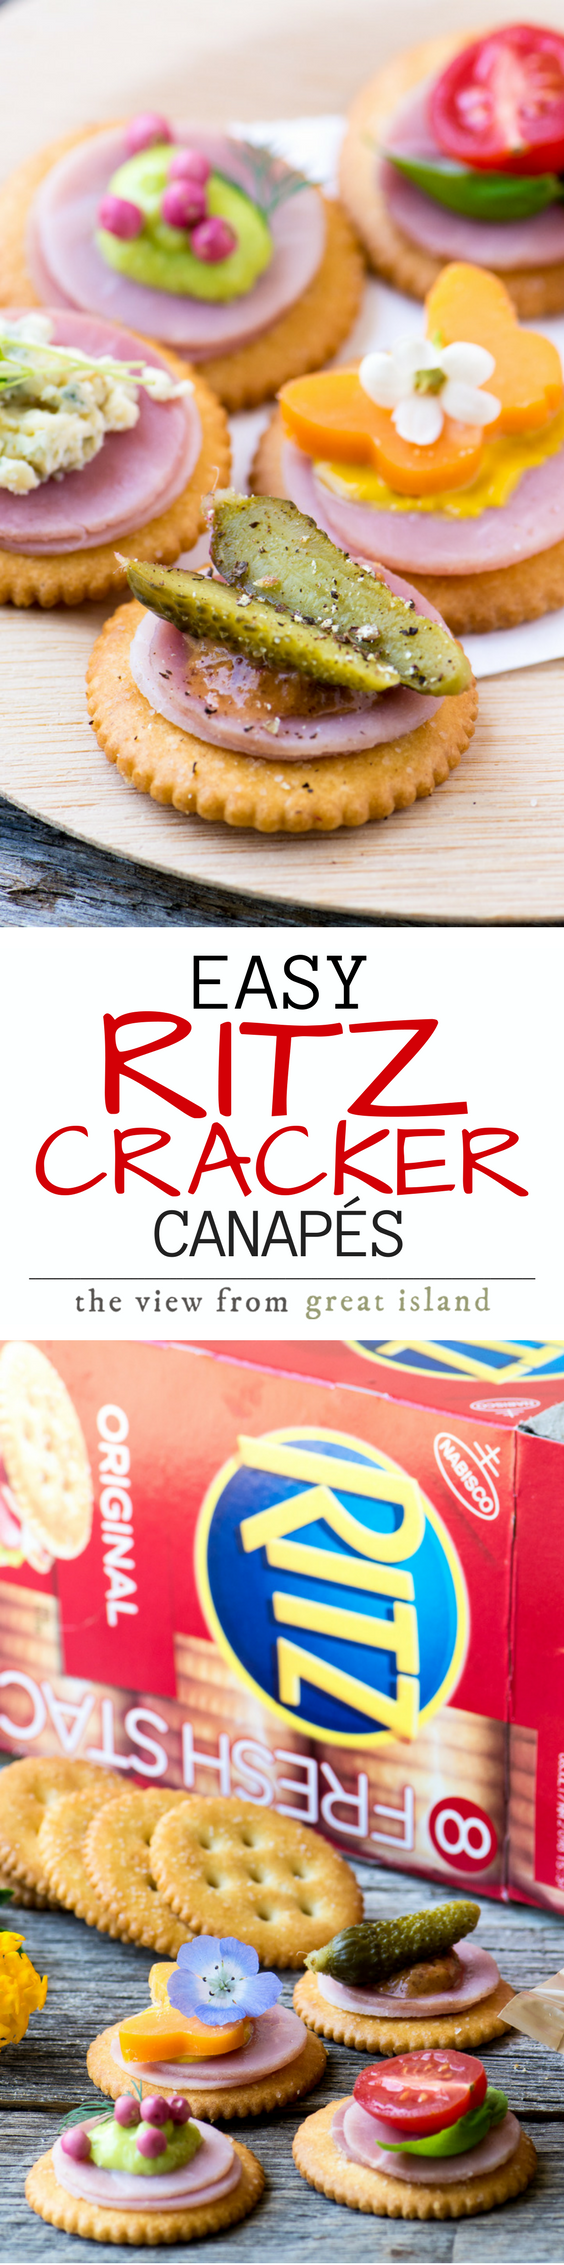 Easy ritz cracker canap s video the view from great island for Canape using fita